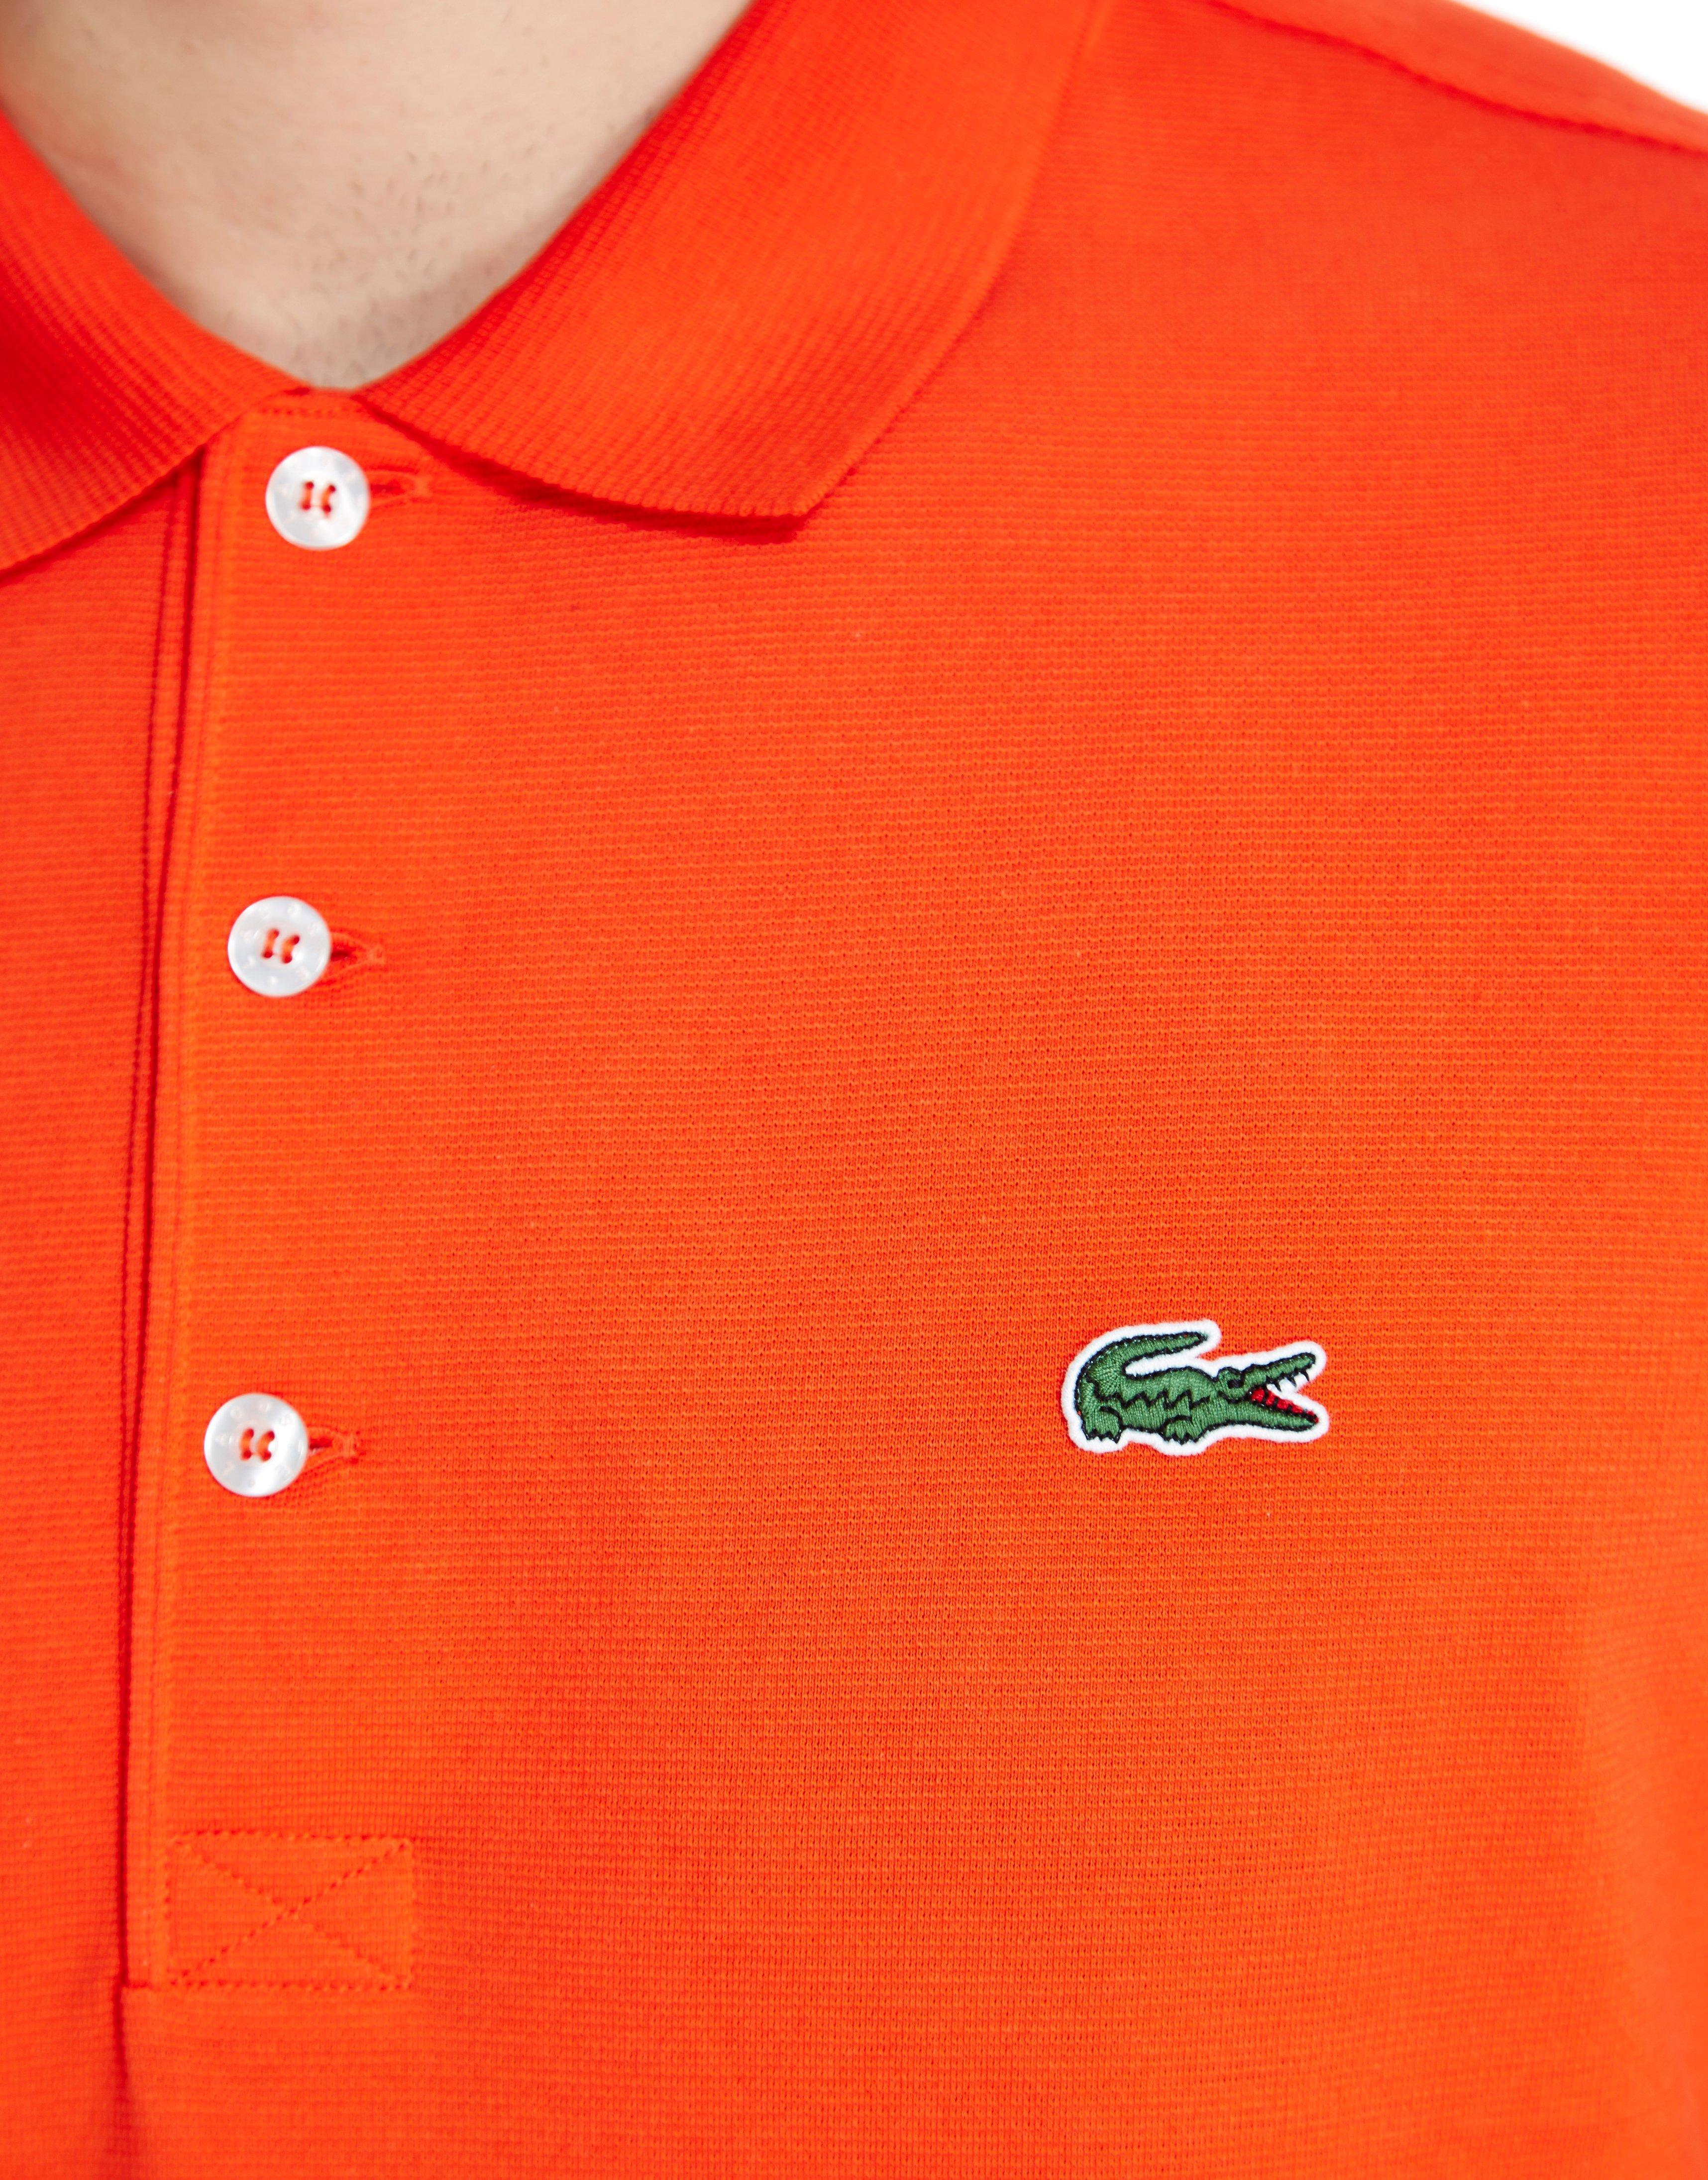 eea50a13e7 Lacoste Alligator Polo Shirt in Red for Men - Lyst